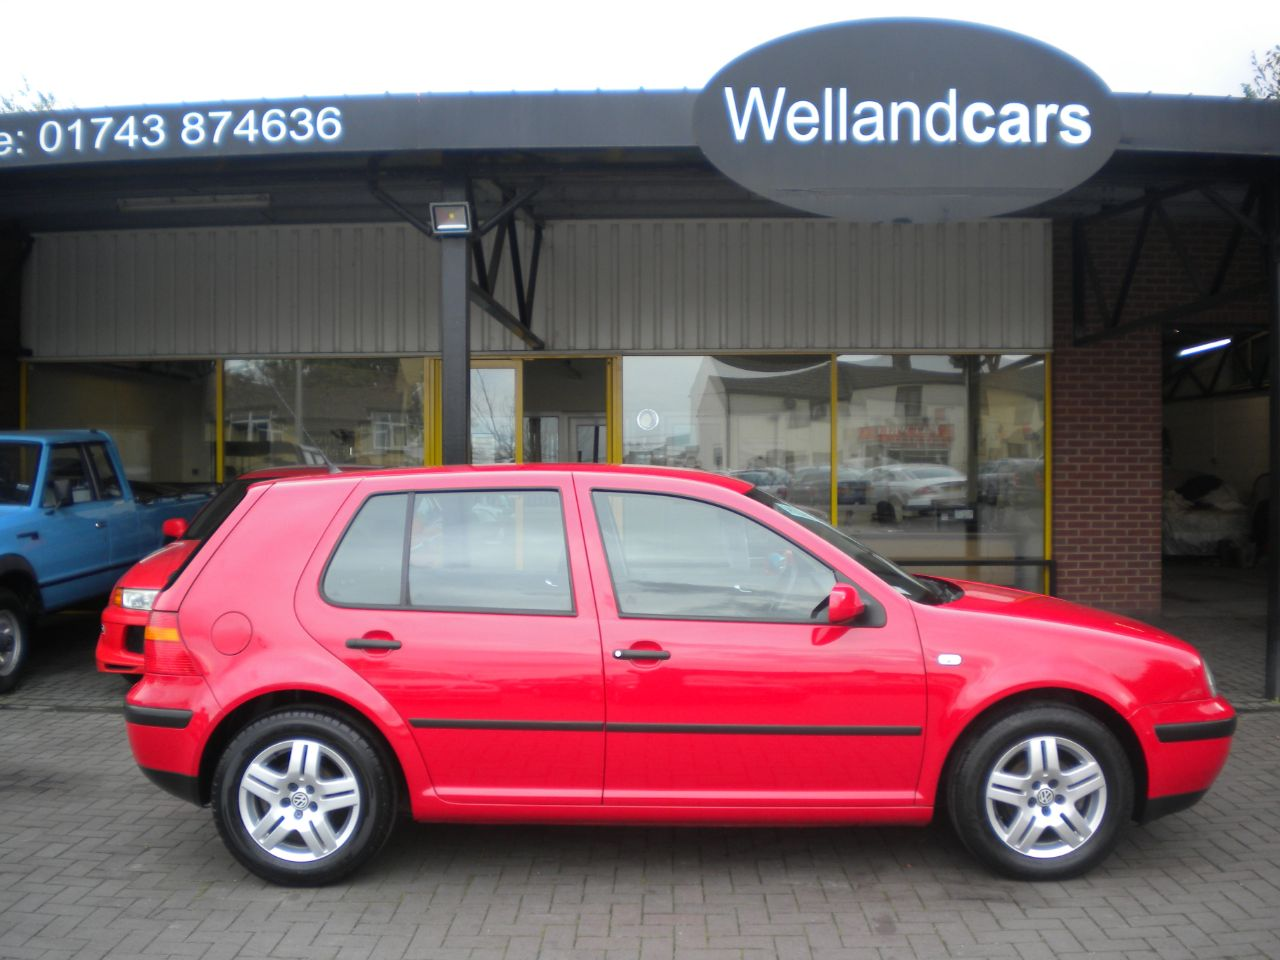 Volkswagen Golf 1.4 Match 5dr Manual, Air-Con, Alloys, CD, Recent Full Service and Tyres. Hatchback Petrol Red at Welland Cars Shrewsbury